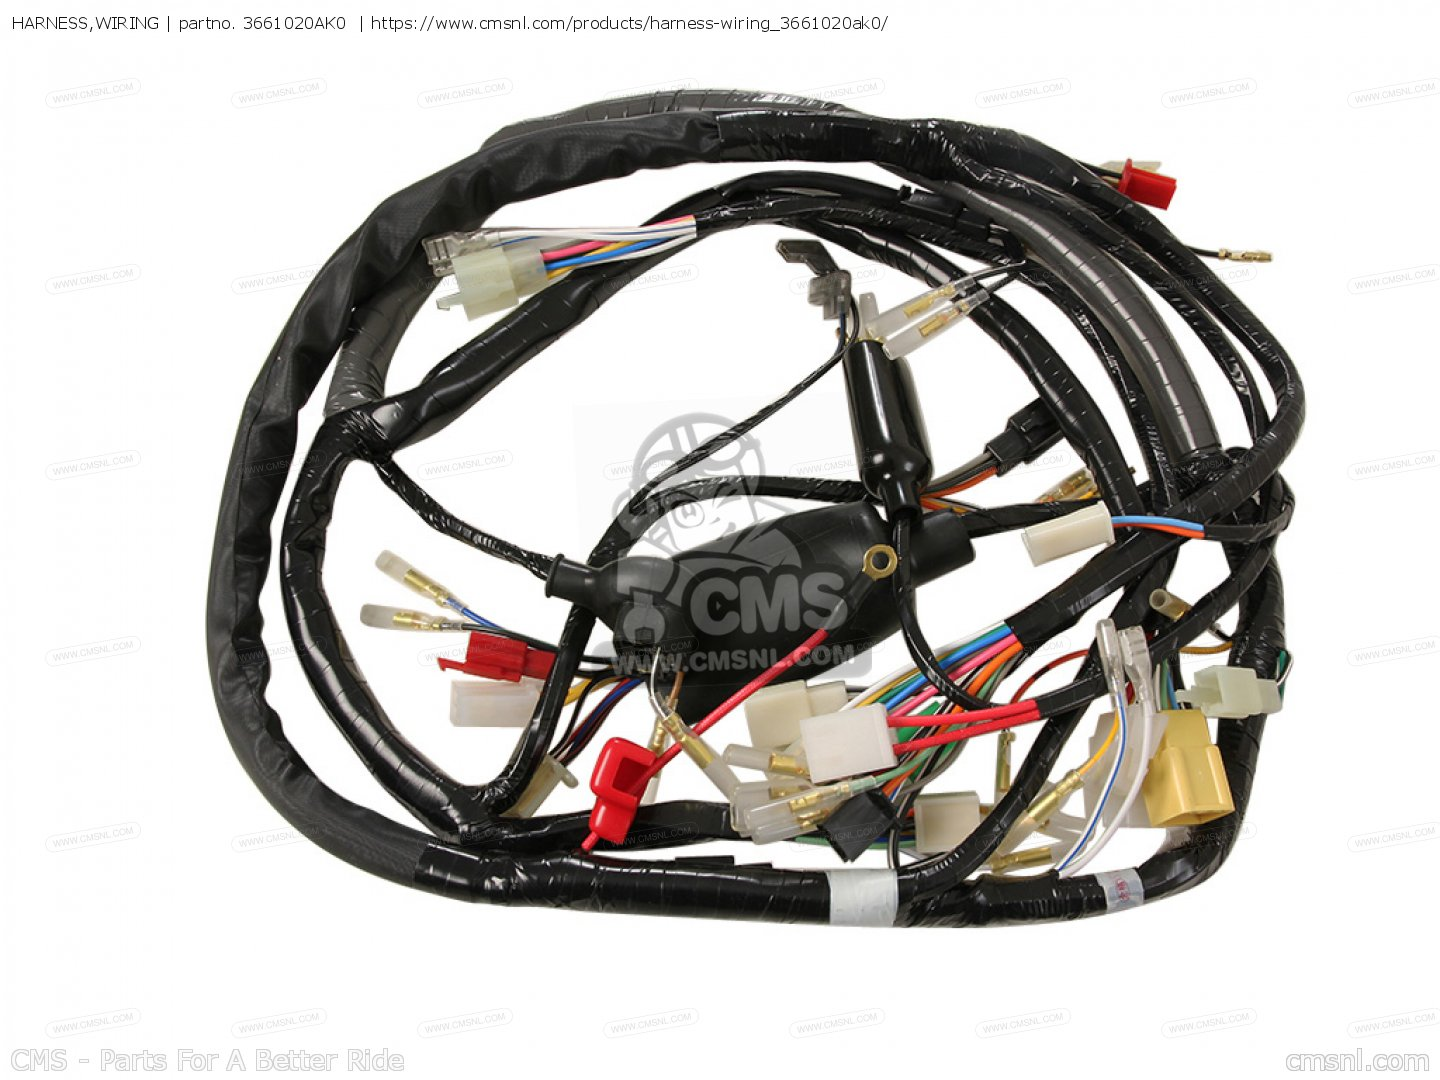 Wiring Harness Iding Machine For Sale riding mowers 7 ... on